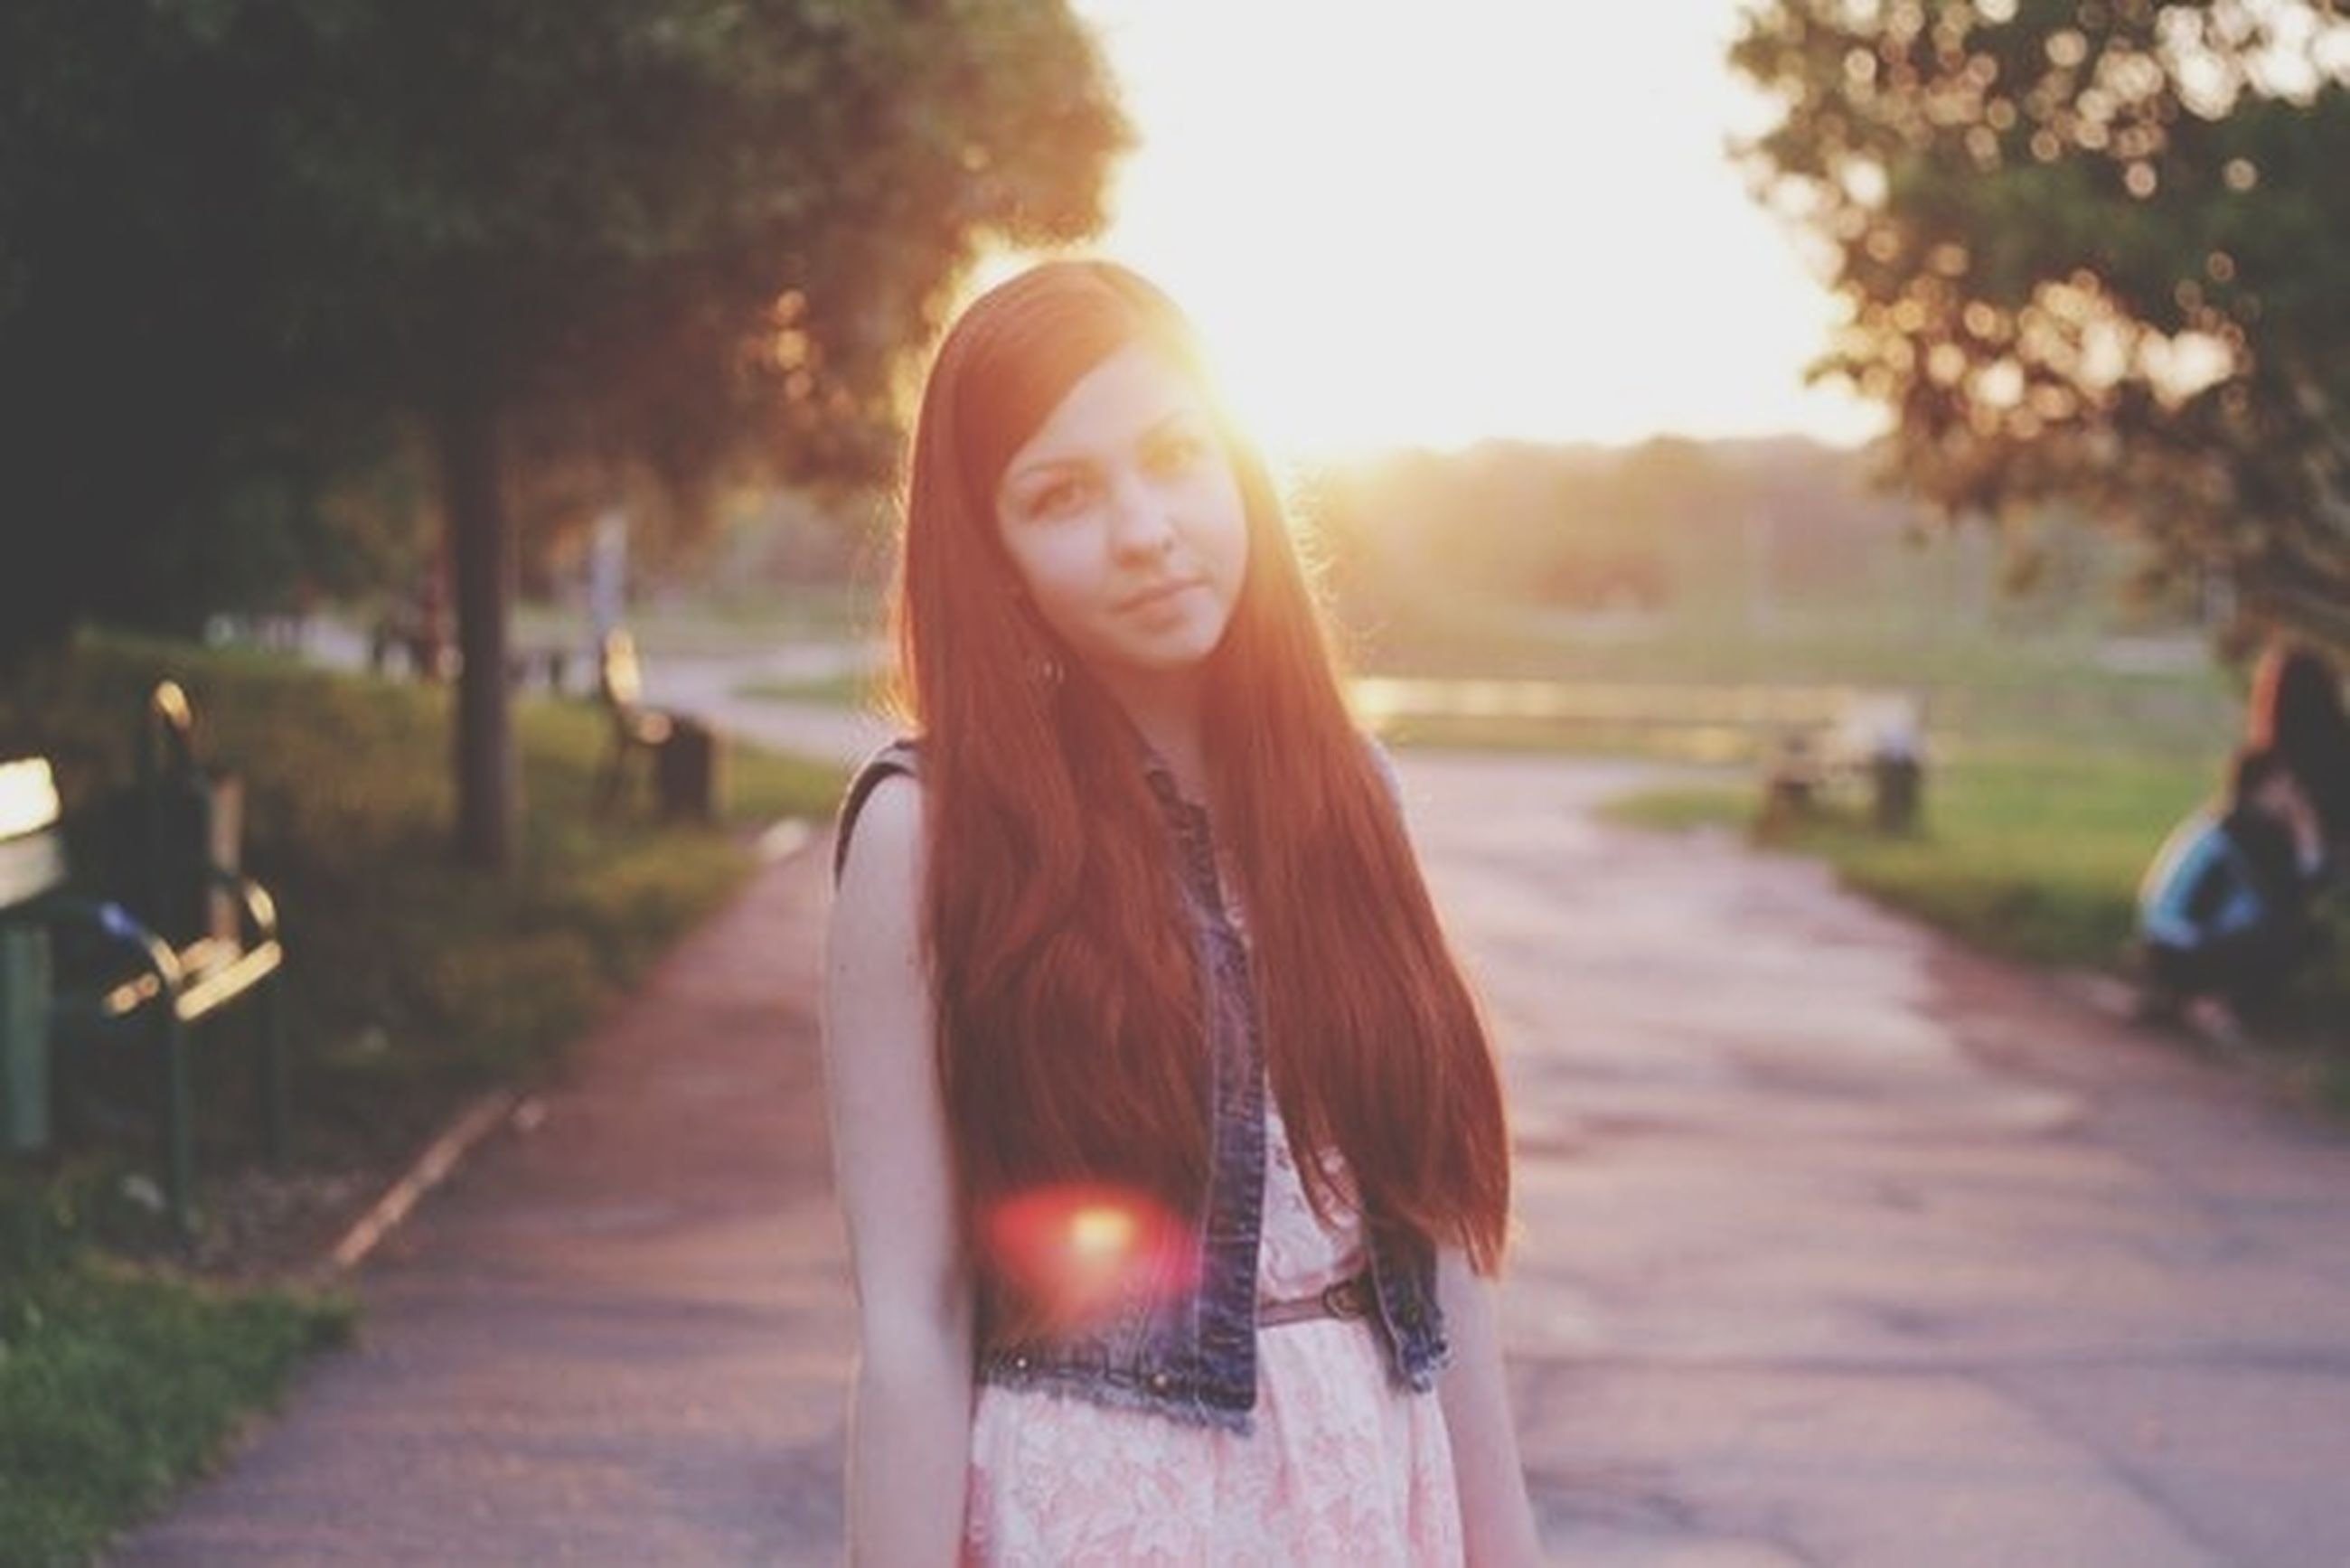 lifestyles, person, leisure activity, focus on foreground, tree, casual clothing, young adult, sunlight, long hair, young women, front view, portrait, looking at camera, standing, incidental people, park - man made space, outdoors, road